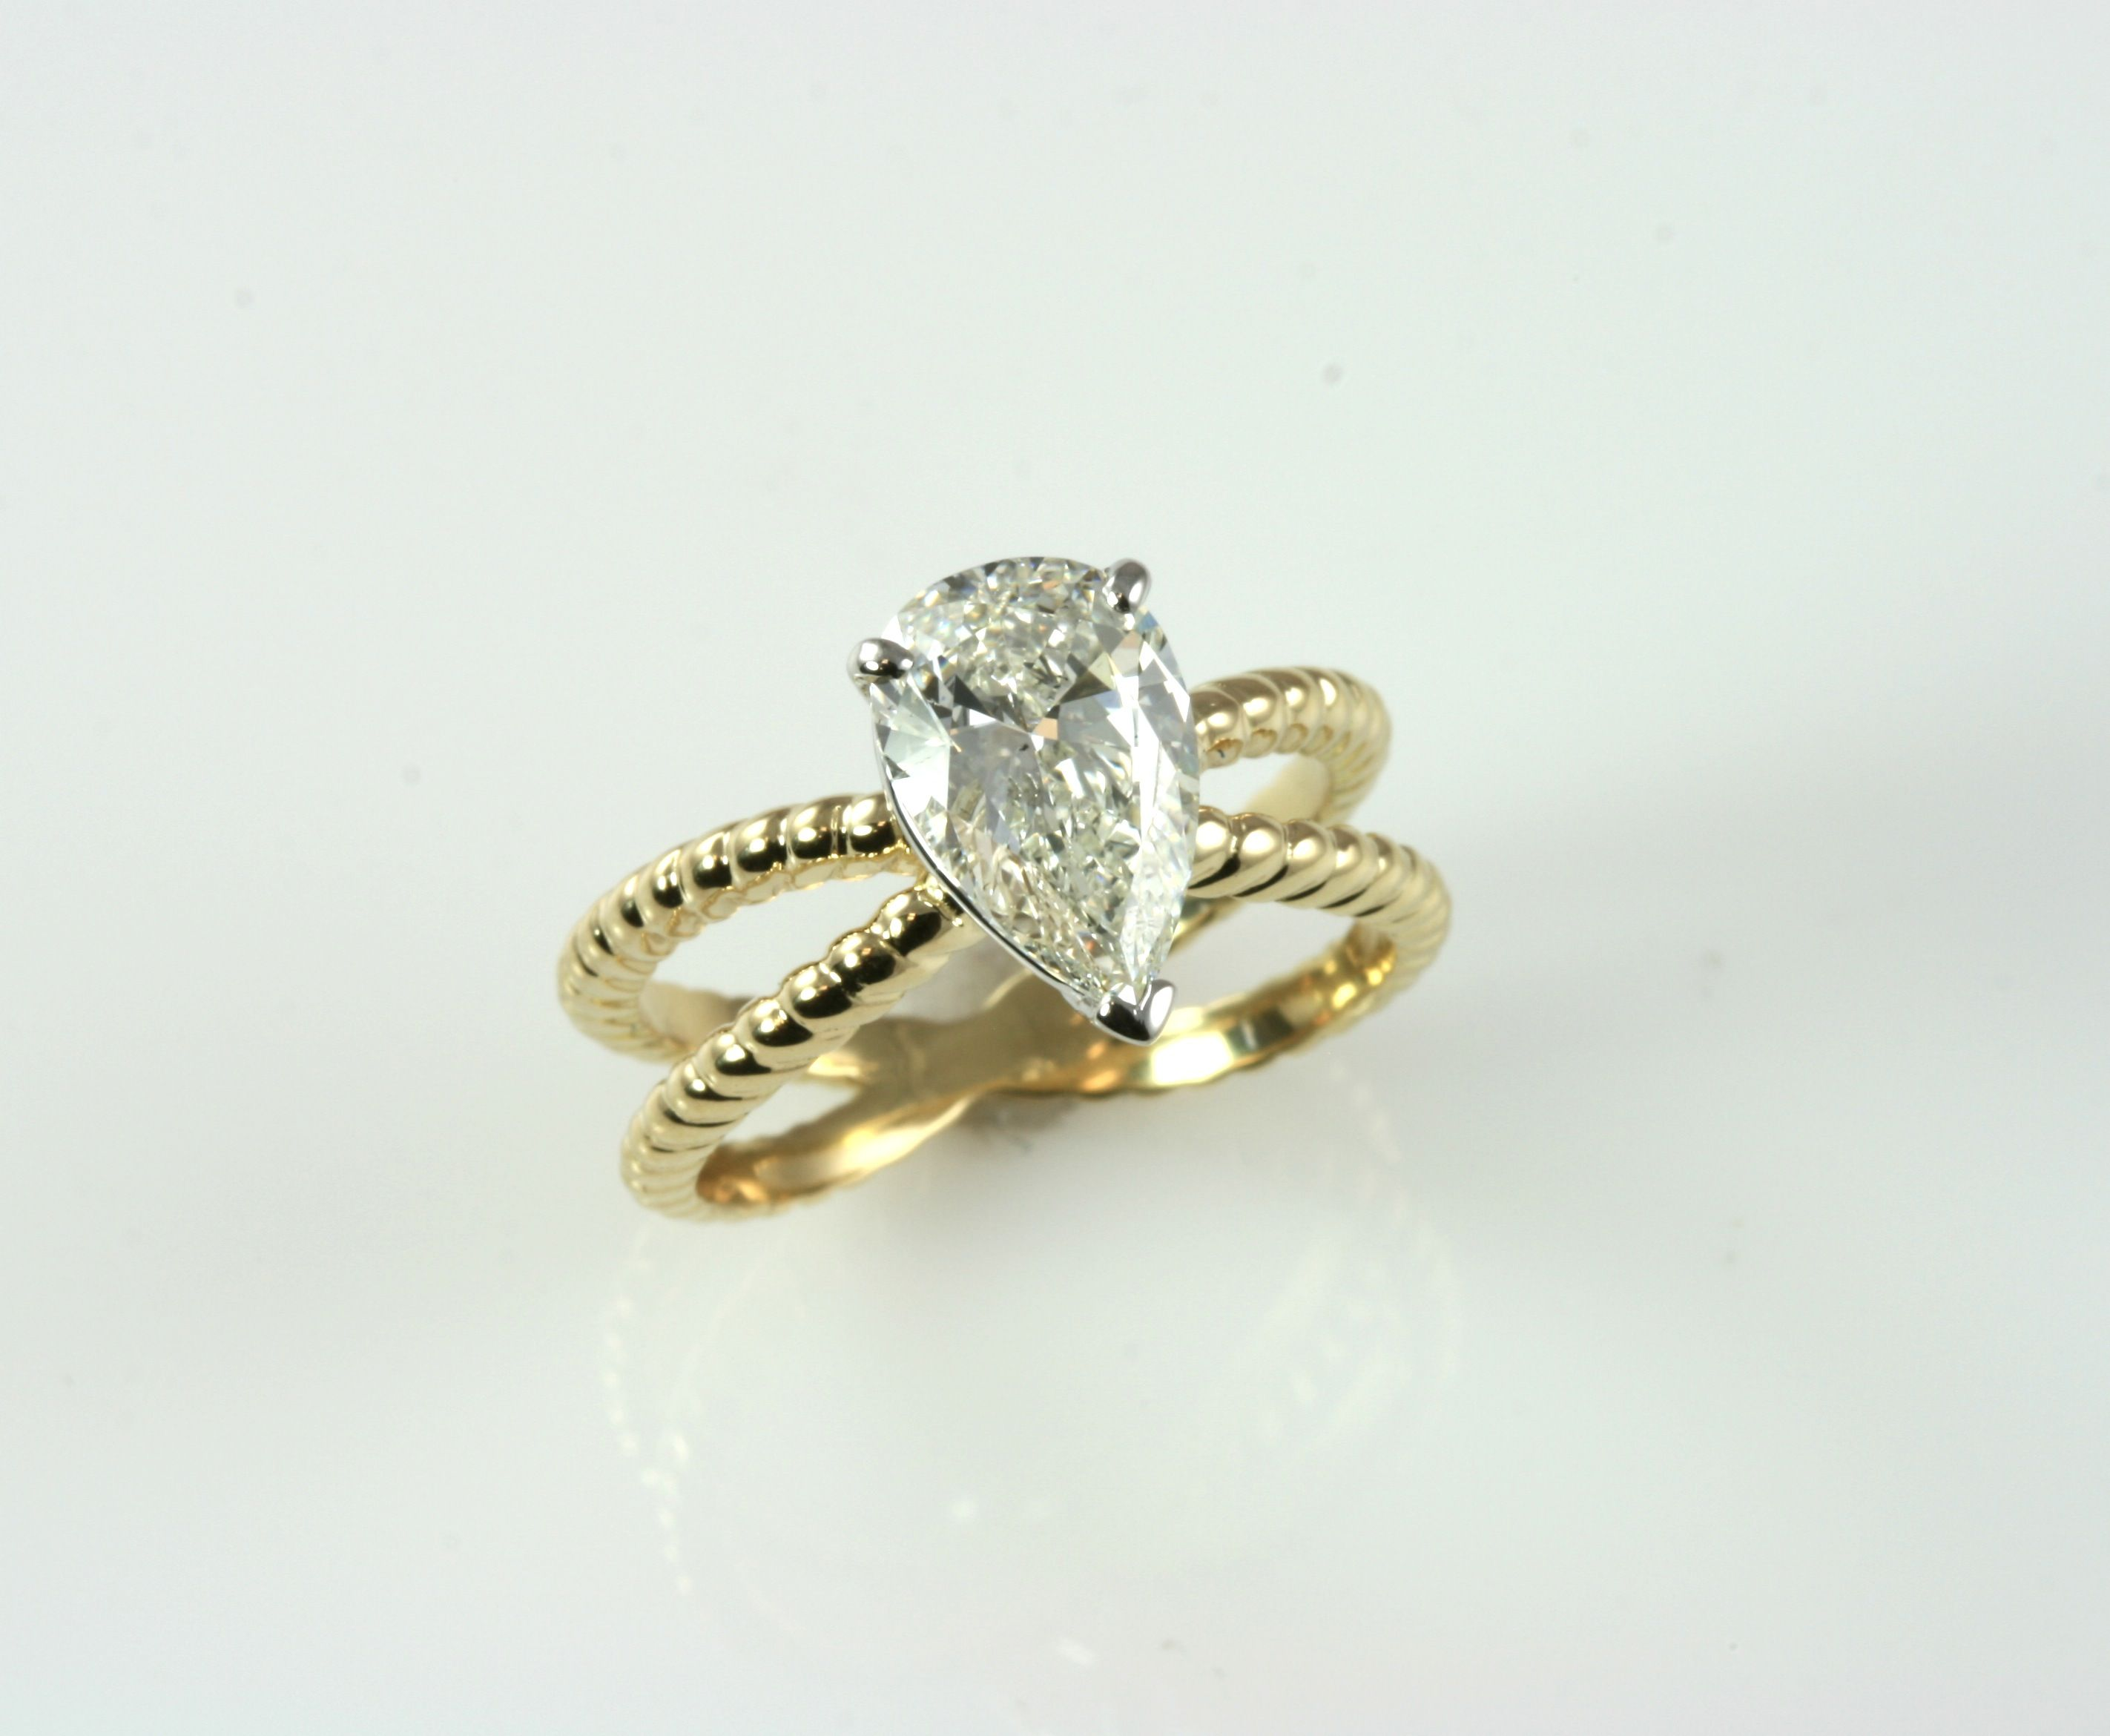 New k two tone twisted rope split shank engagement ring custom made for customer us pear shape